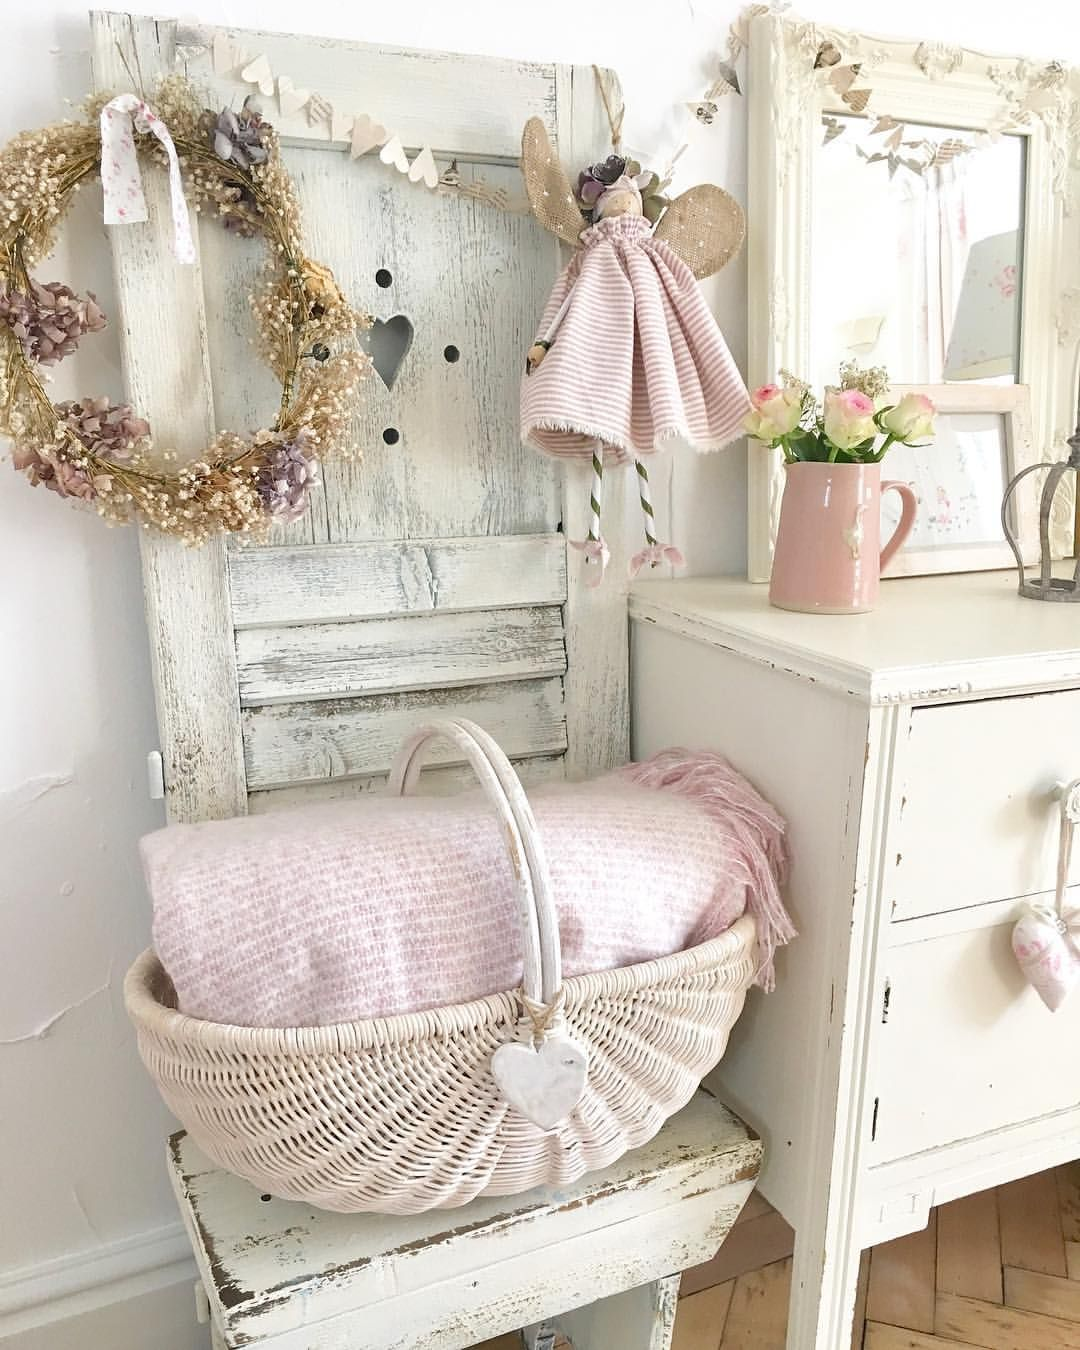 """Photo of Hugs & Hearts Interiors on Instagram: """"Morning … wishing you all a lovely weekend 💕blush pink blankets now in stock www.hugsandheart.co.uk #cottage #countryhome #frenchshutters…"""""""